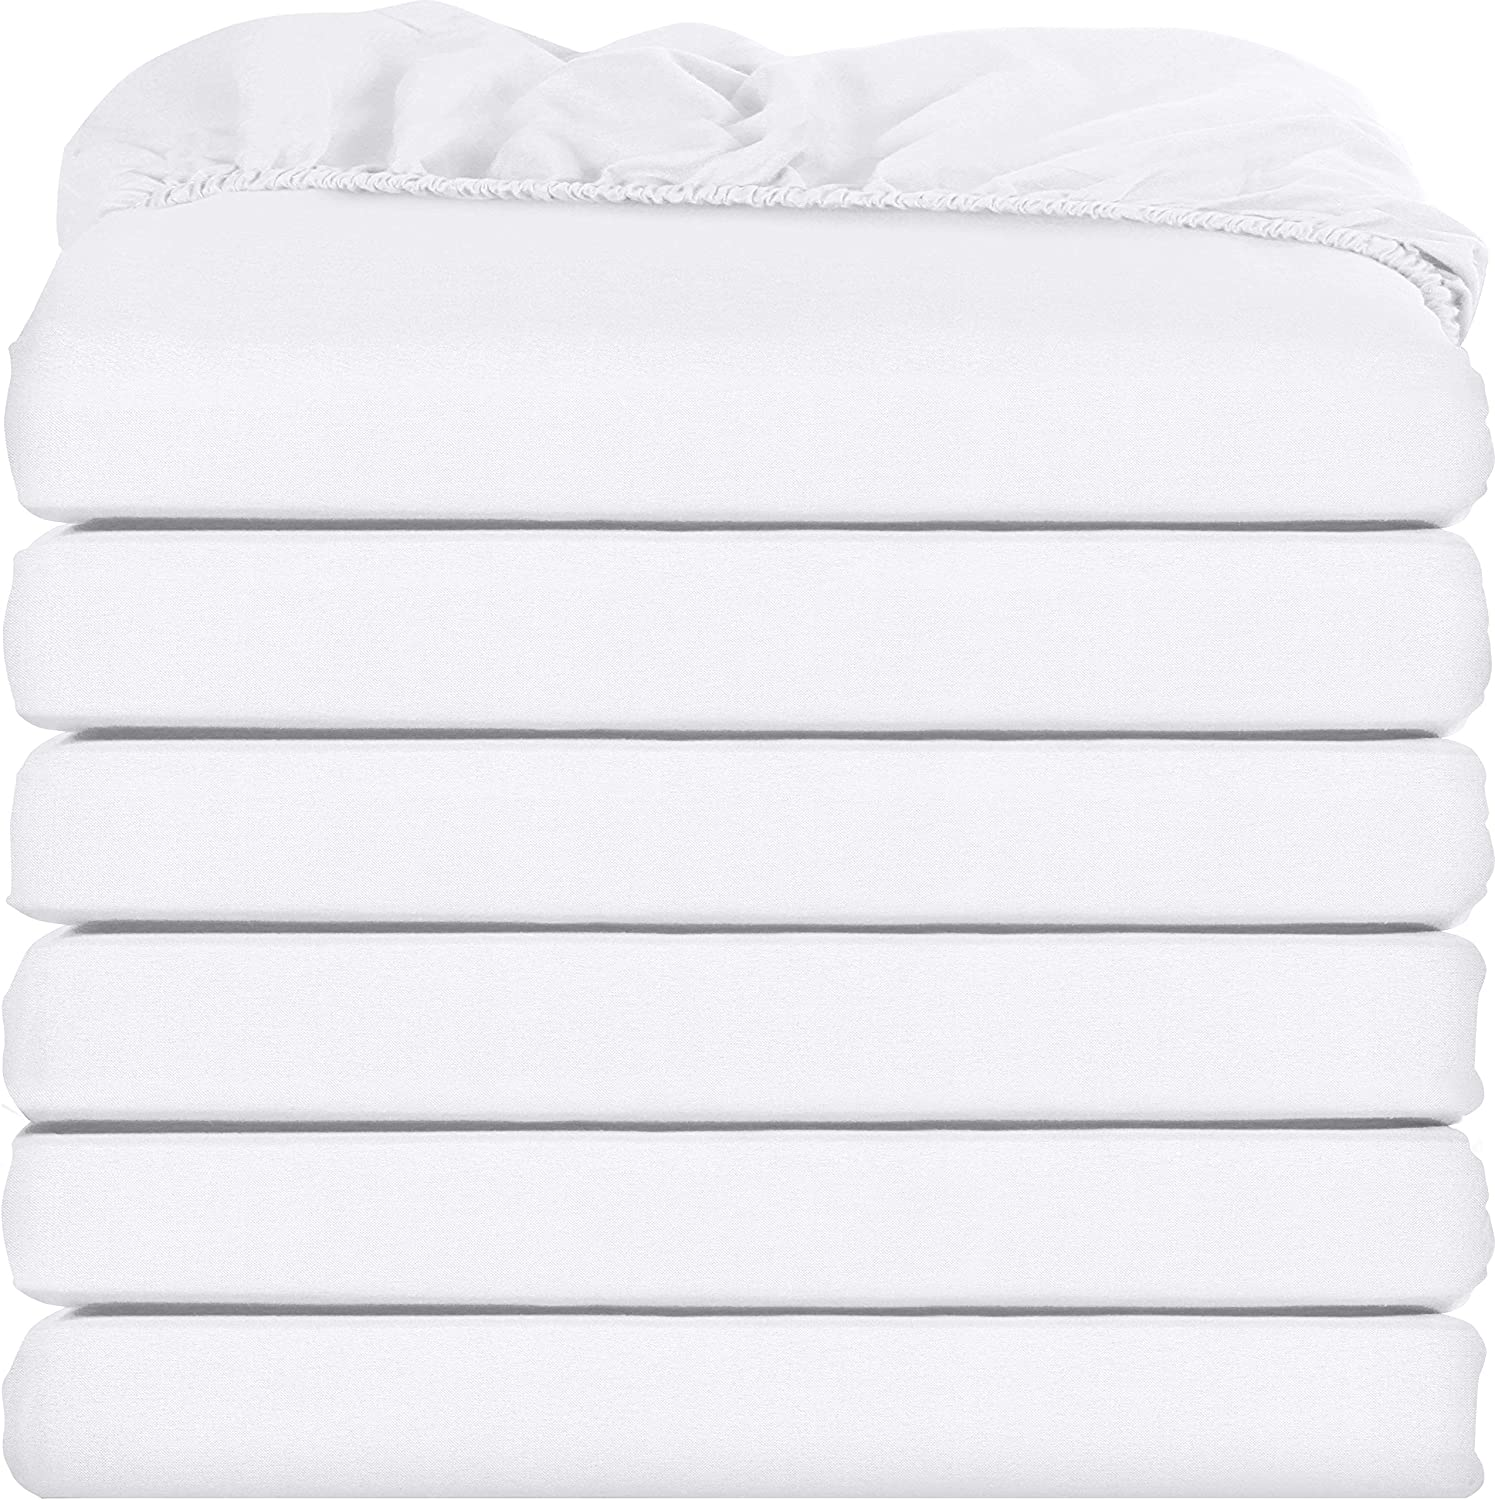 Utopia Bedding Fitted Sheets - Pack of 6 Bottom Sheets - Soft Brushed Microfiber - Deep Pockets, Shrinkage & Fade Resistant - Easy Care (Queen, White): Home & Kitchen